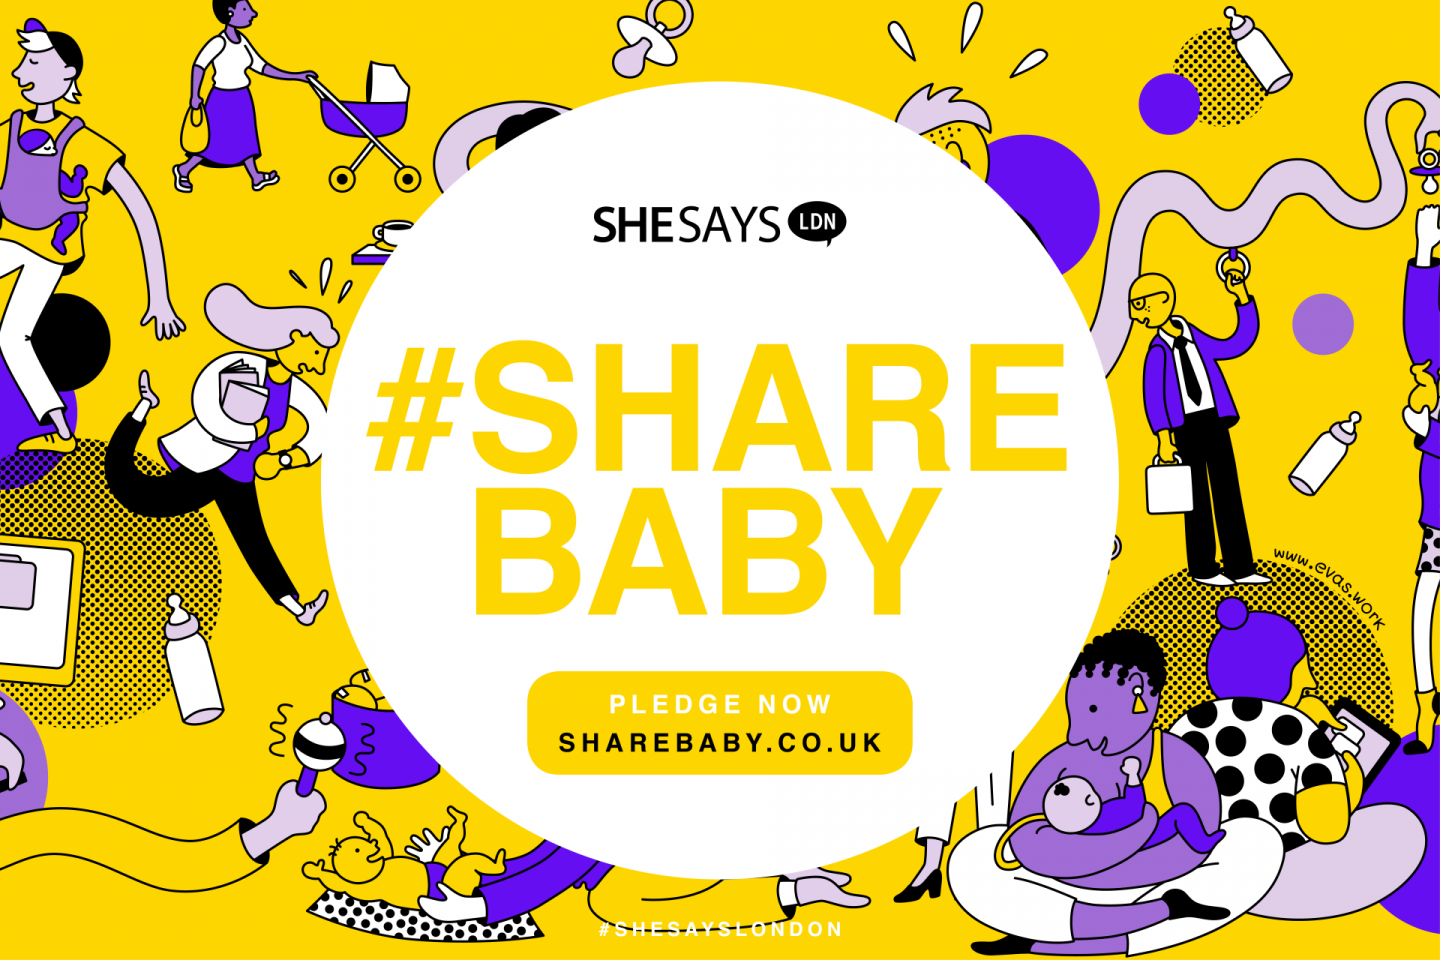 #ShareBaby, #SheSays, Sharebaby, SheSays, Shared parental Leave, SPL, dadbloguk.com, dad blog, dad blogger, paternitly leave, maternity leave